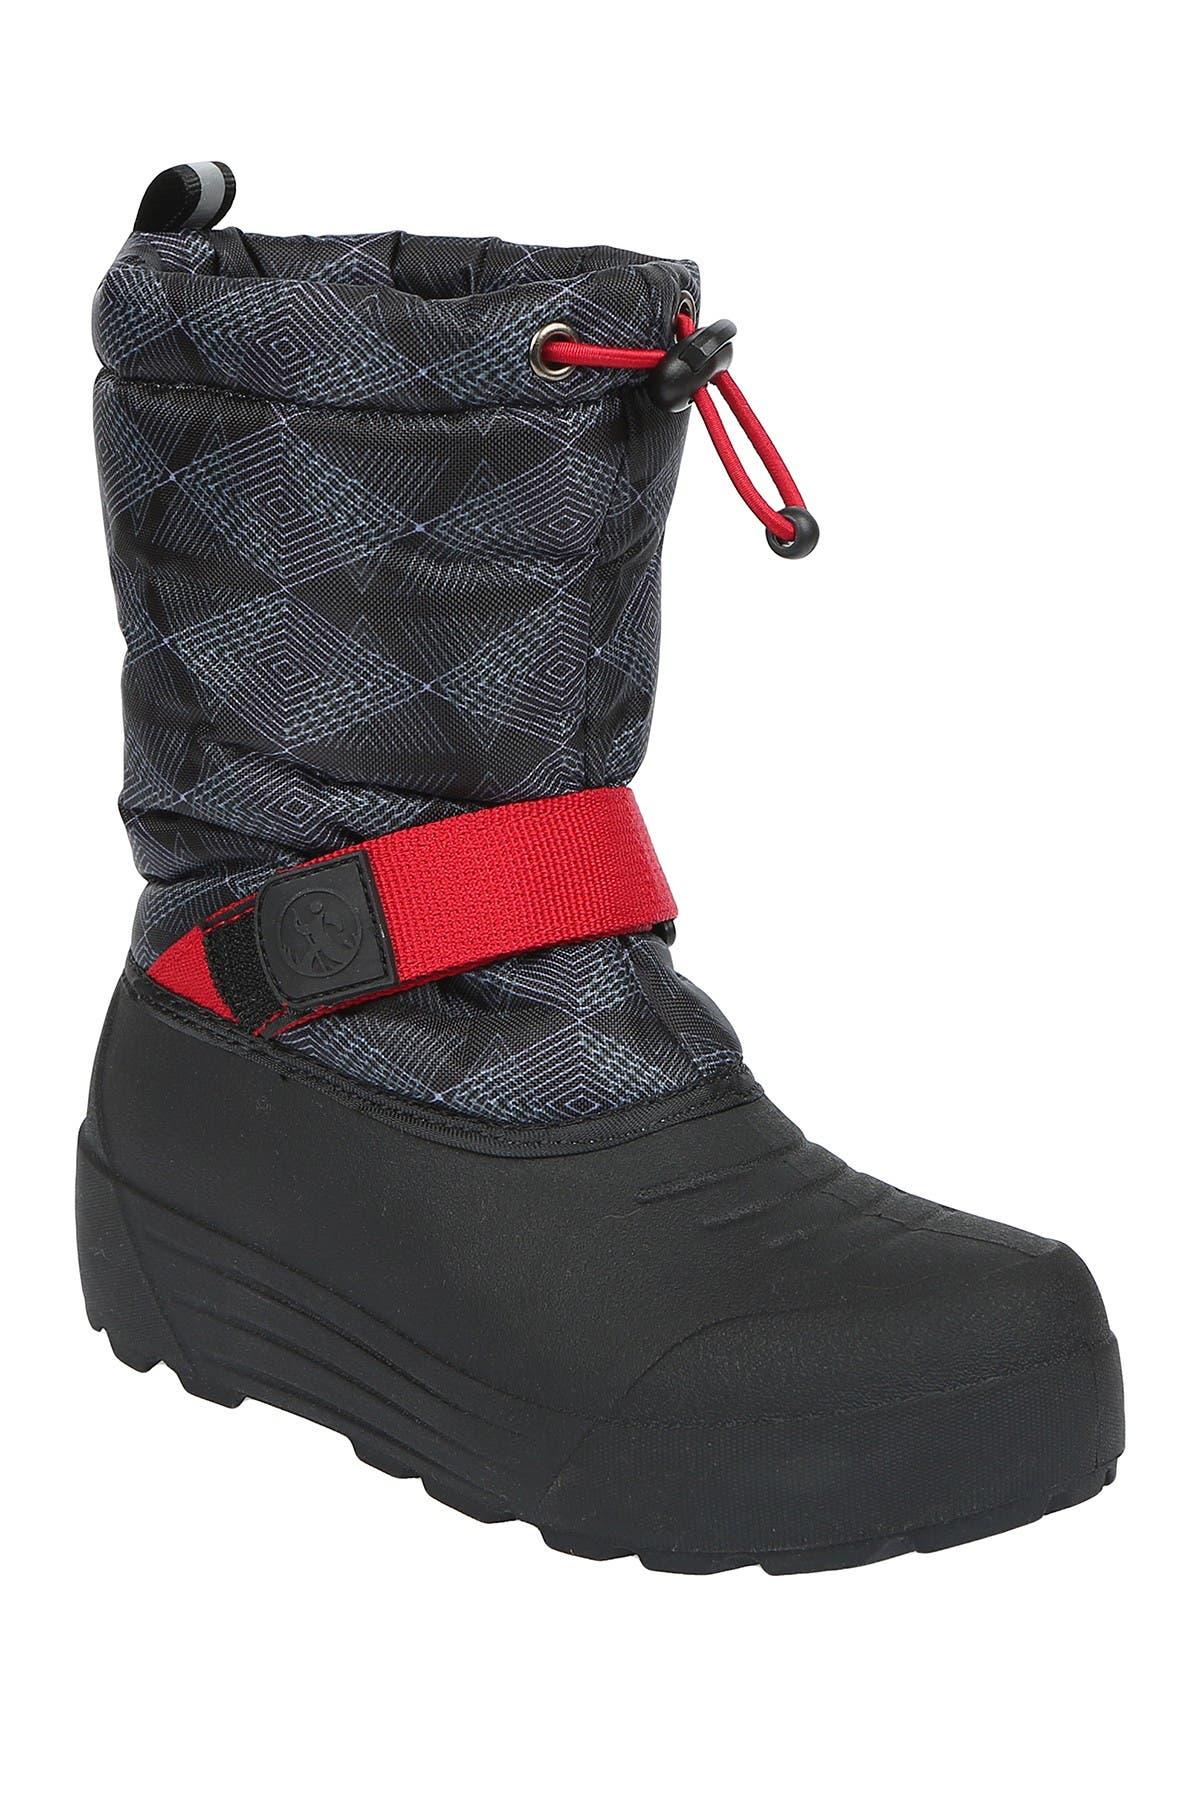 Image of NORTHSIDE Frosty Insulated Winter Snow Boot